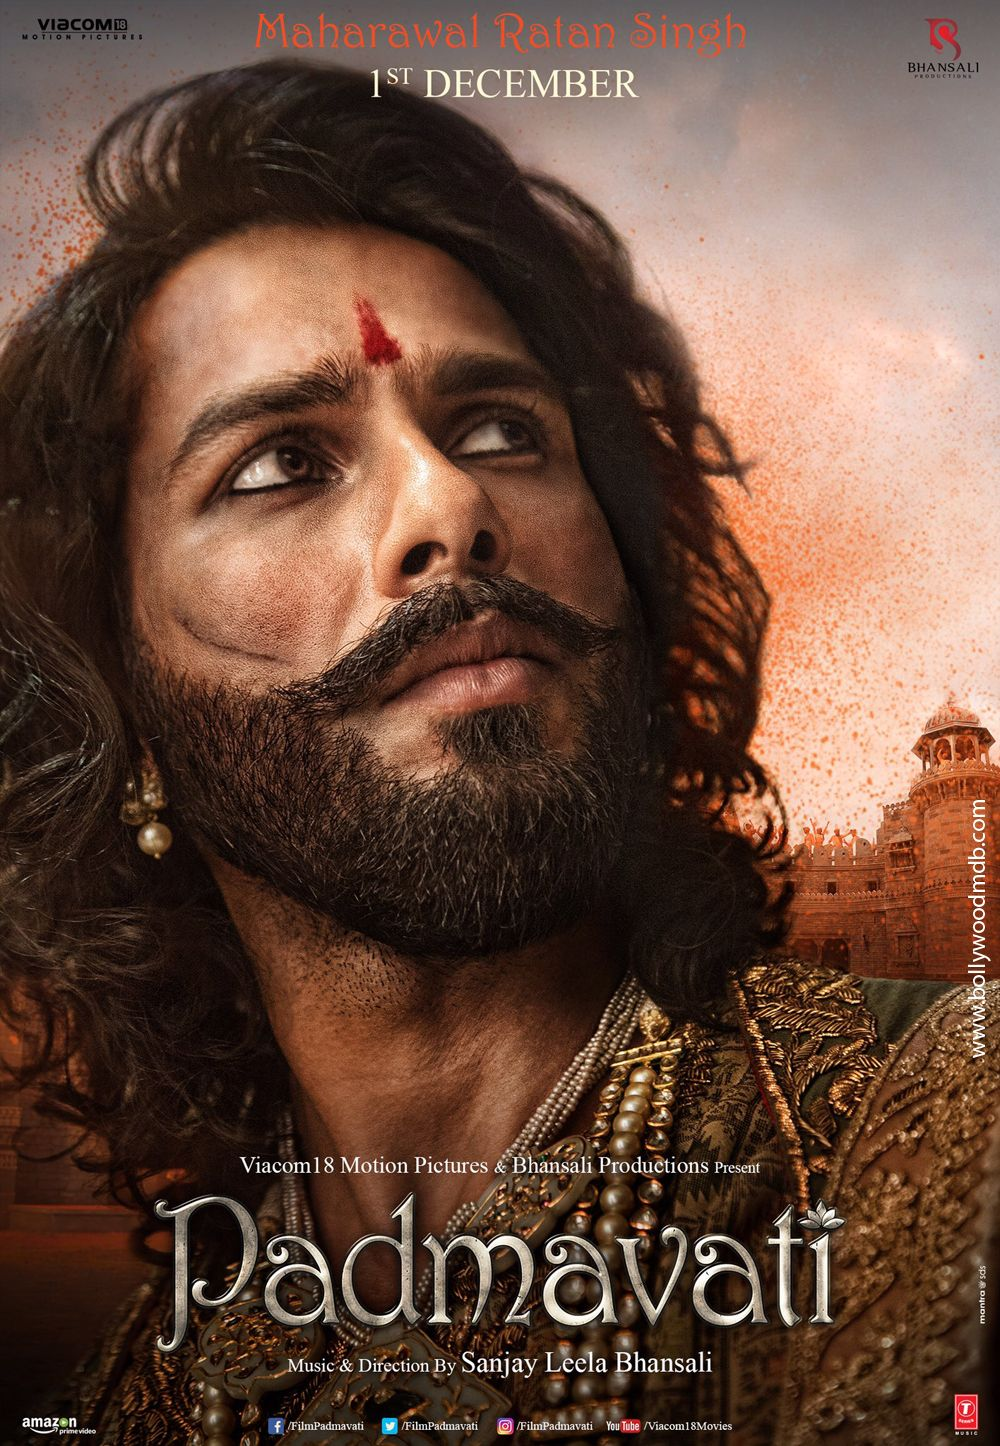 Padmavati 2018 Movie Free Download 720p Bluray Johnson In 2019